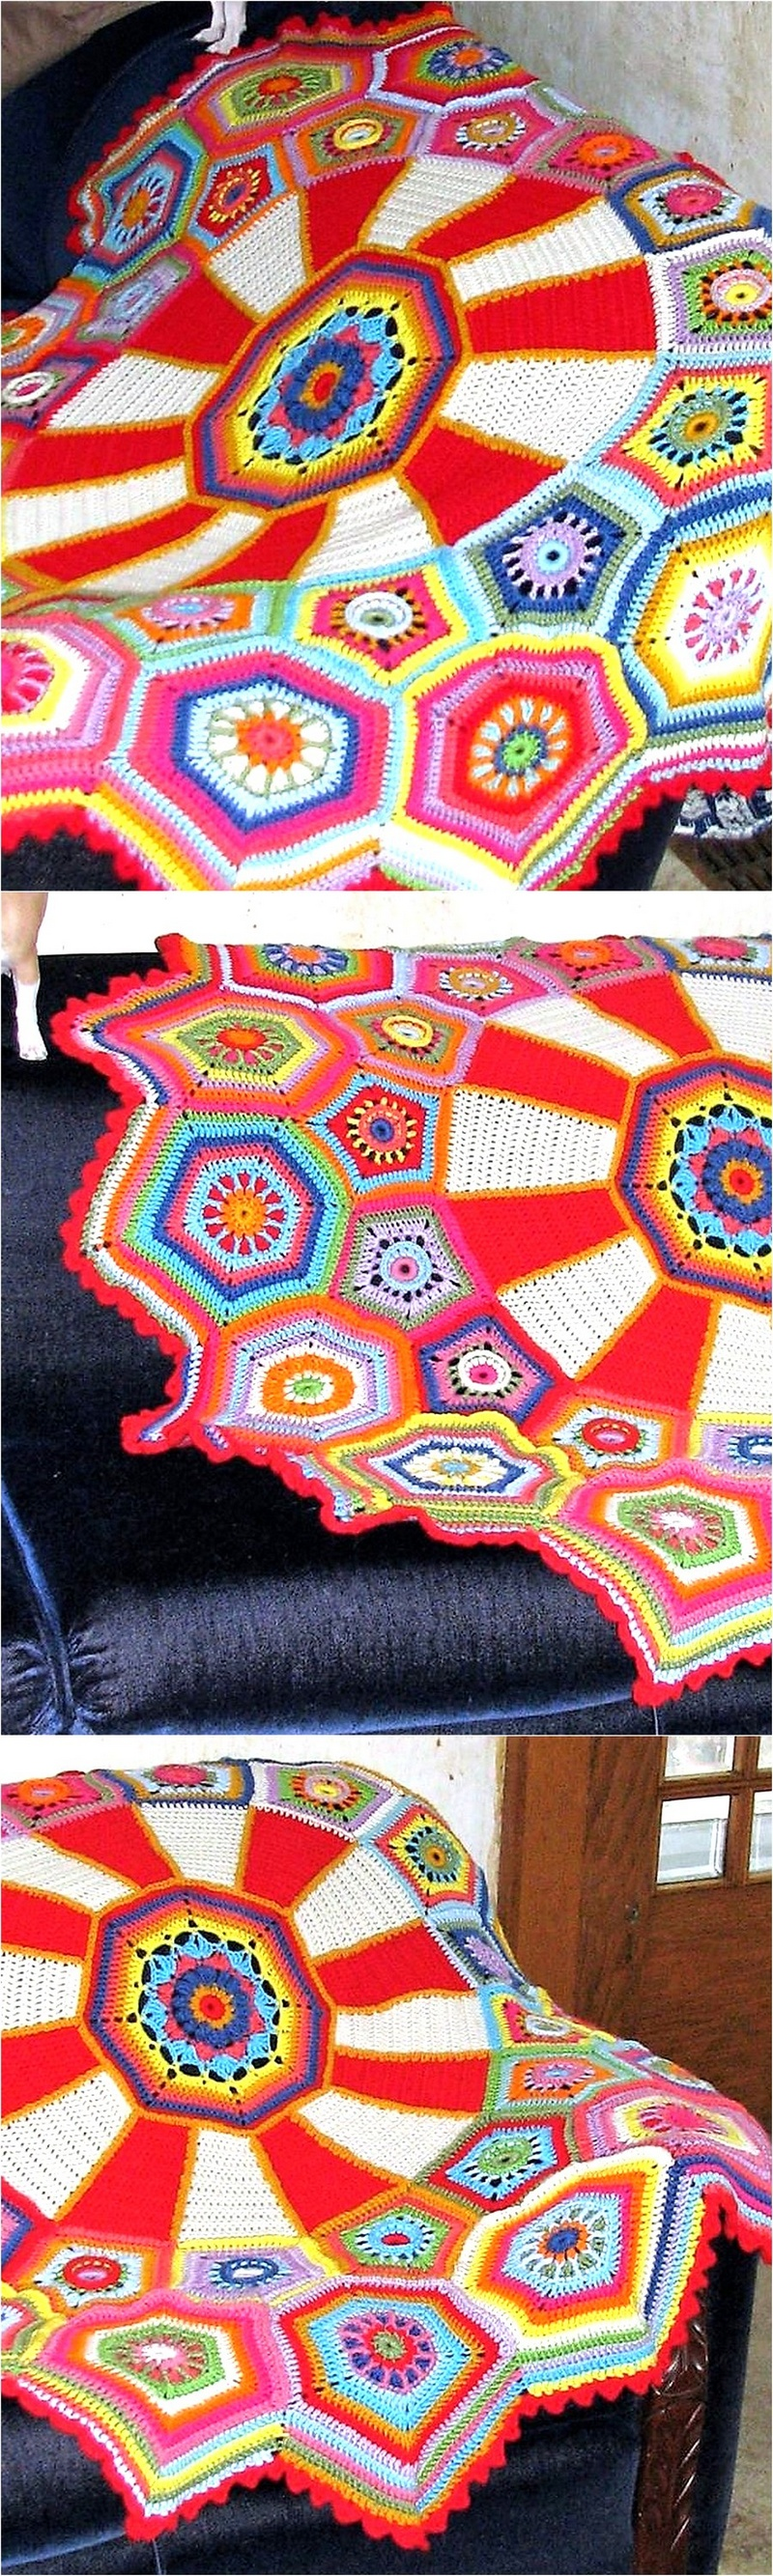 crochet-afghan-ideas-20